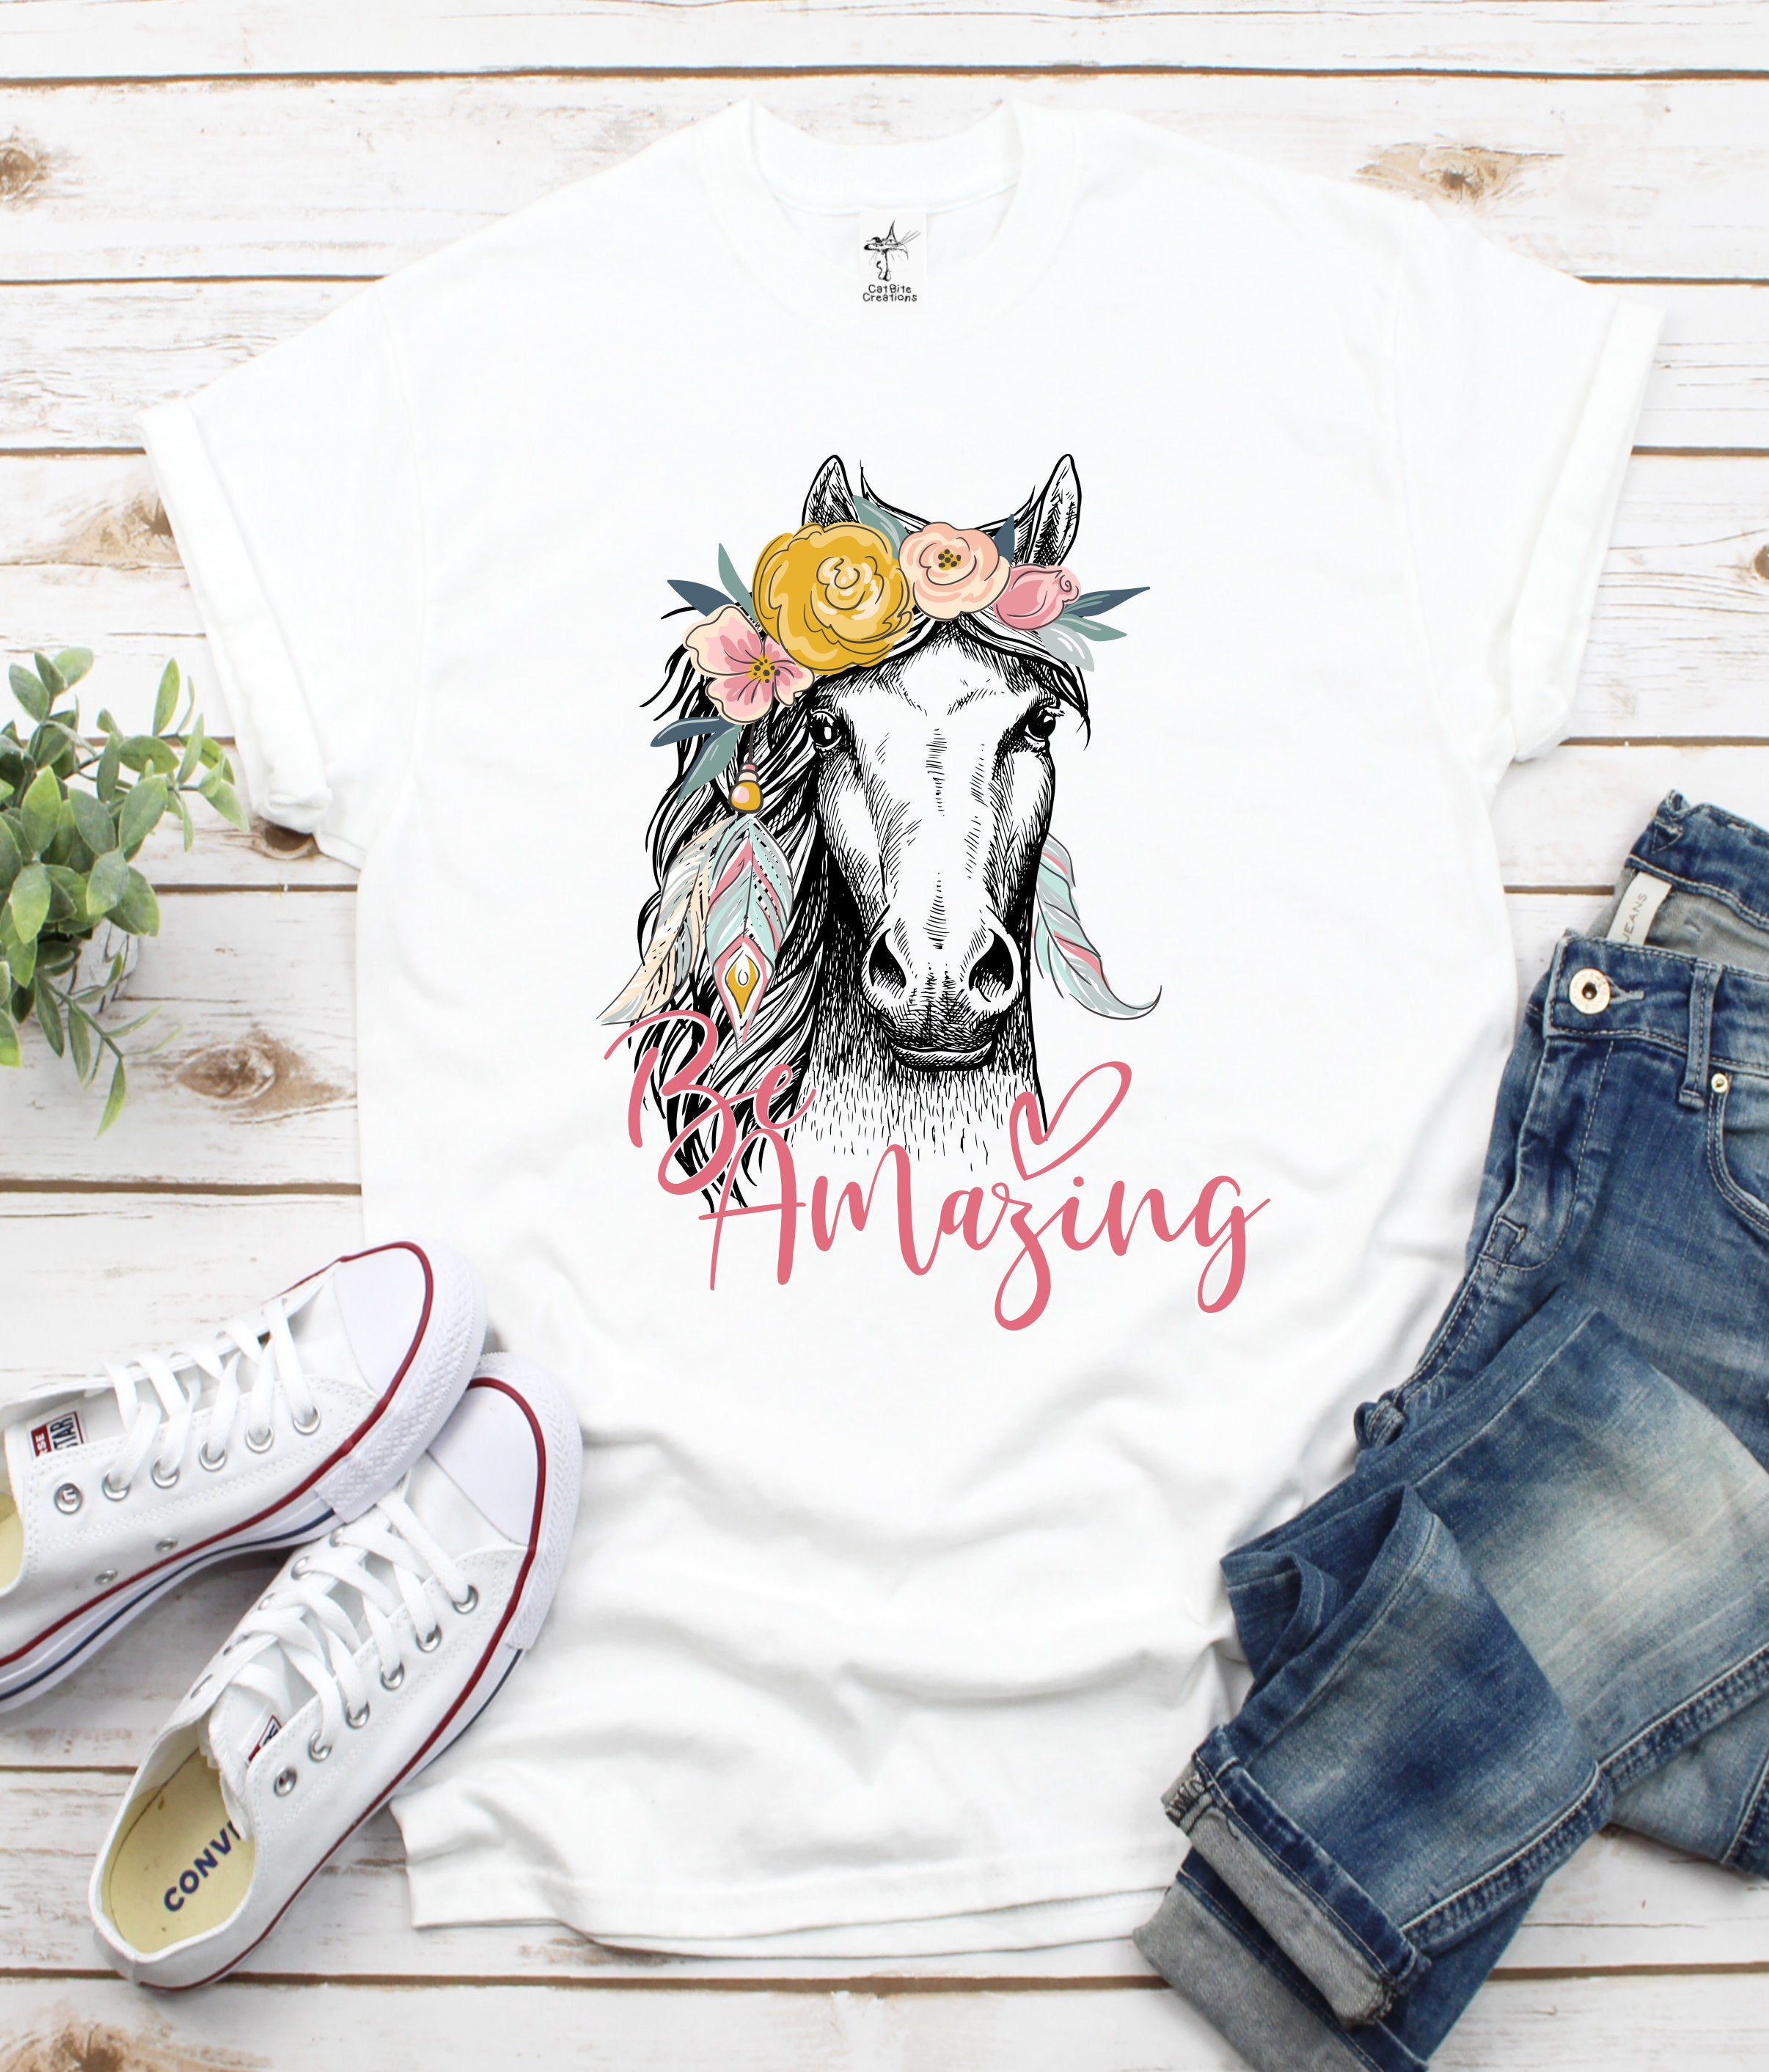 Ladies Wear Short Sleeves In Summer Amazing Horse Print Women Tshirt Cotton Casual Funny T Shirt